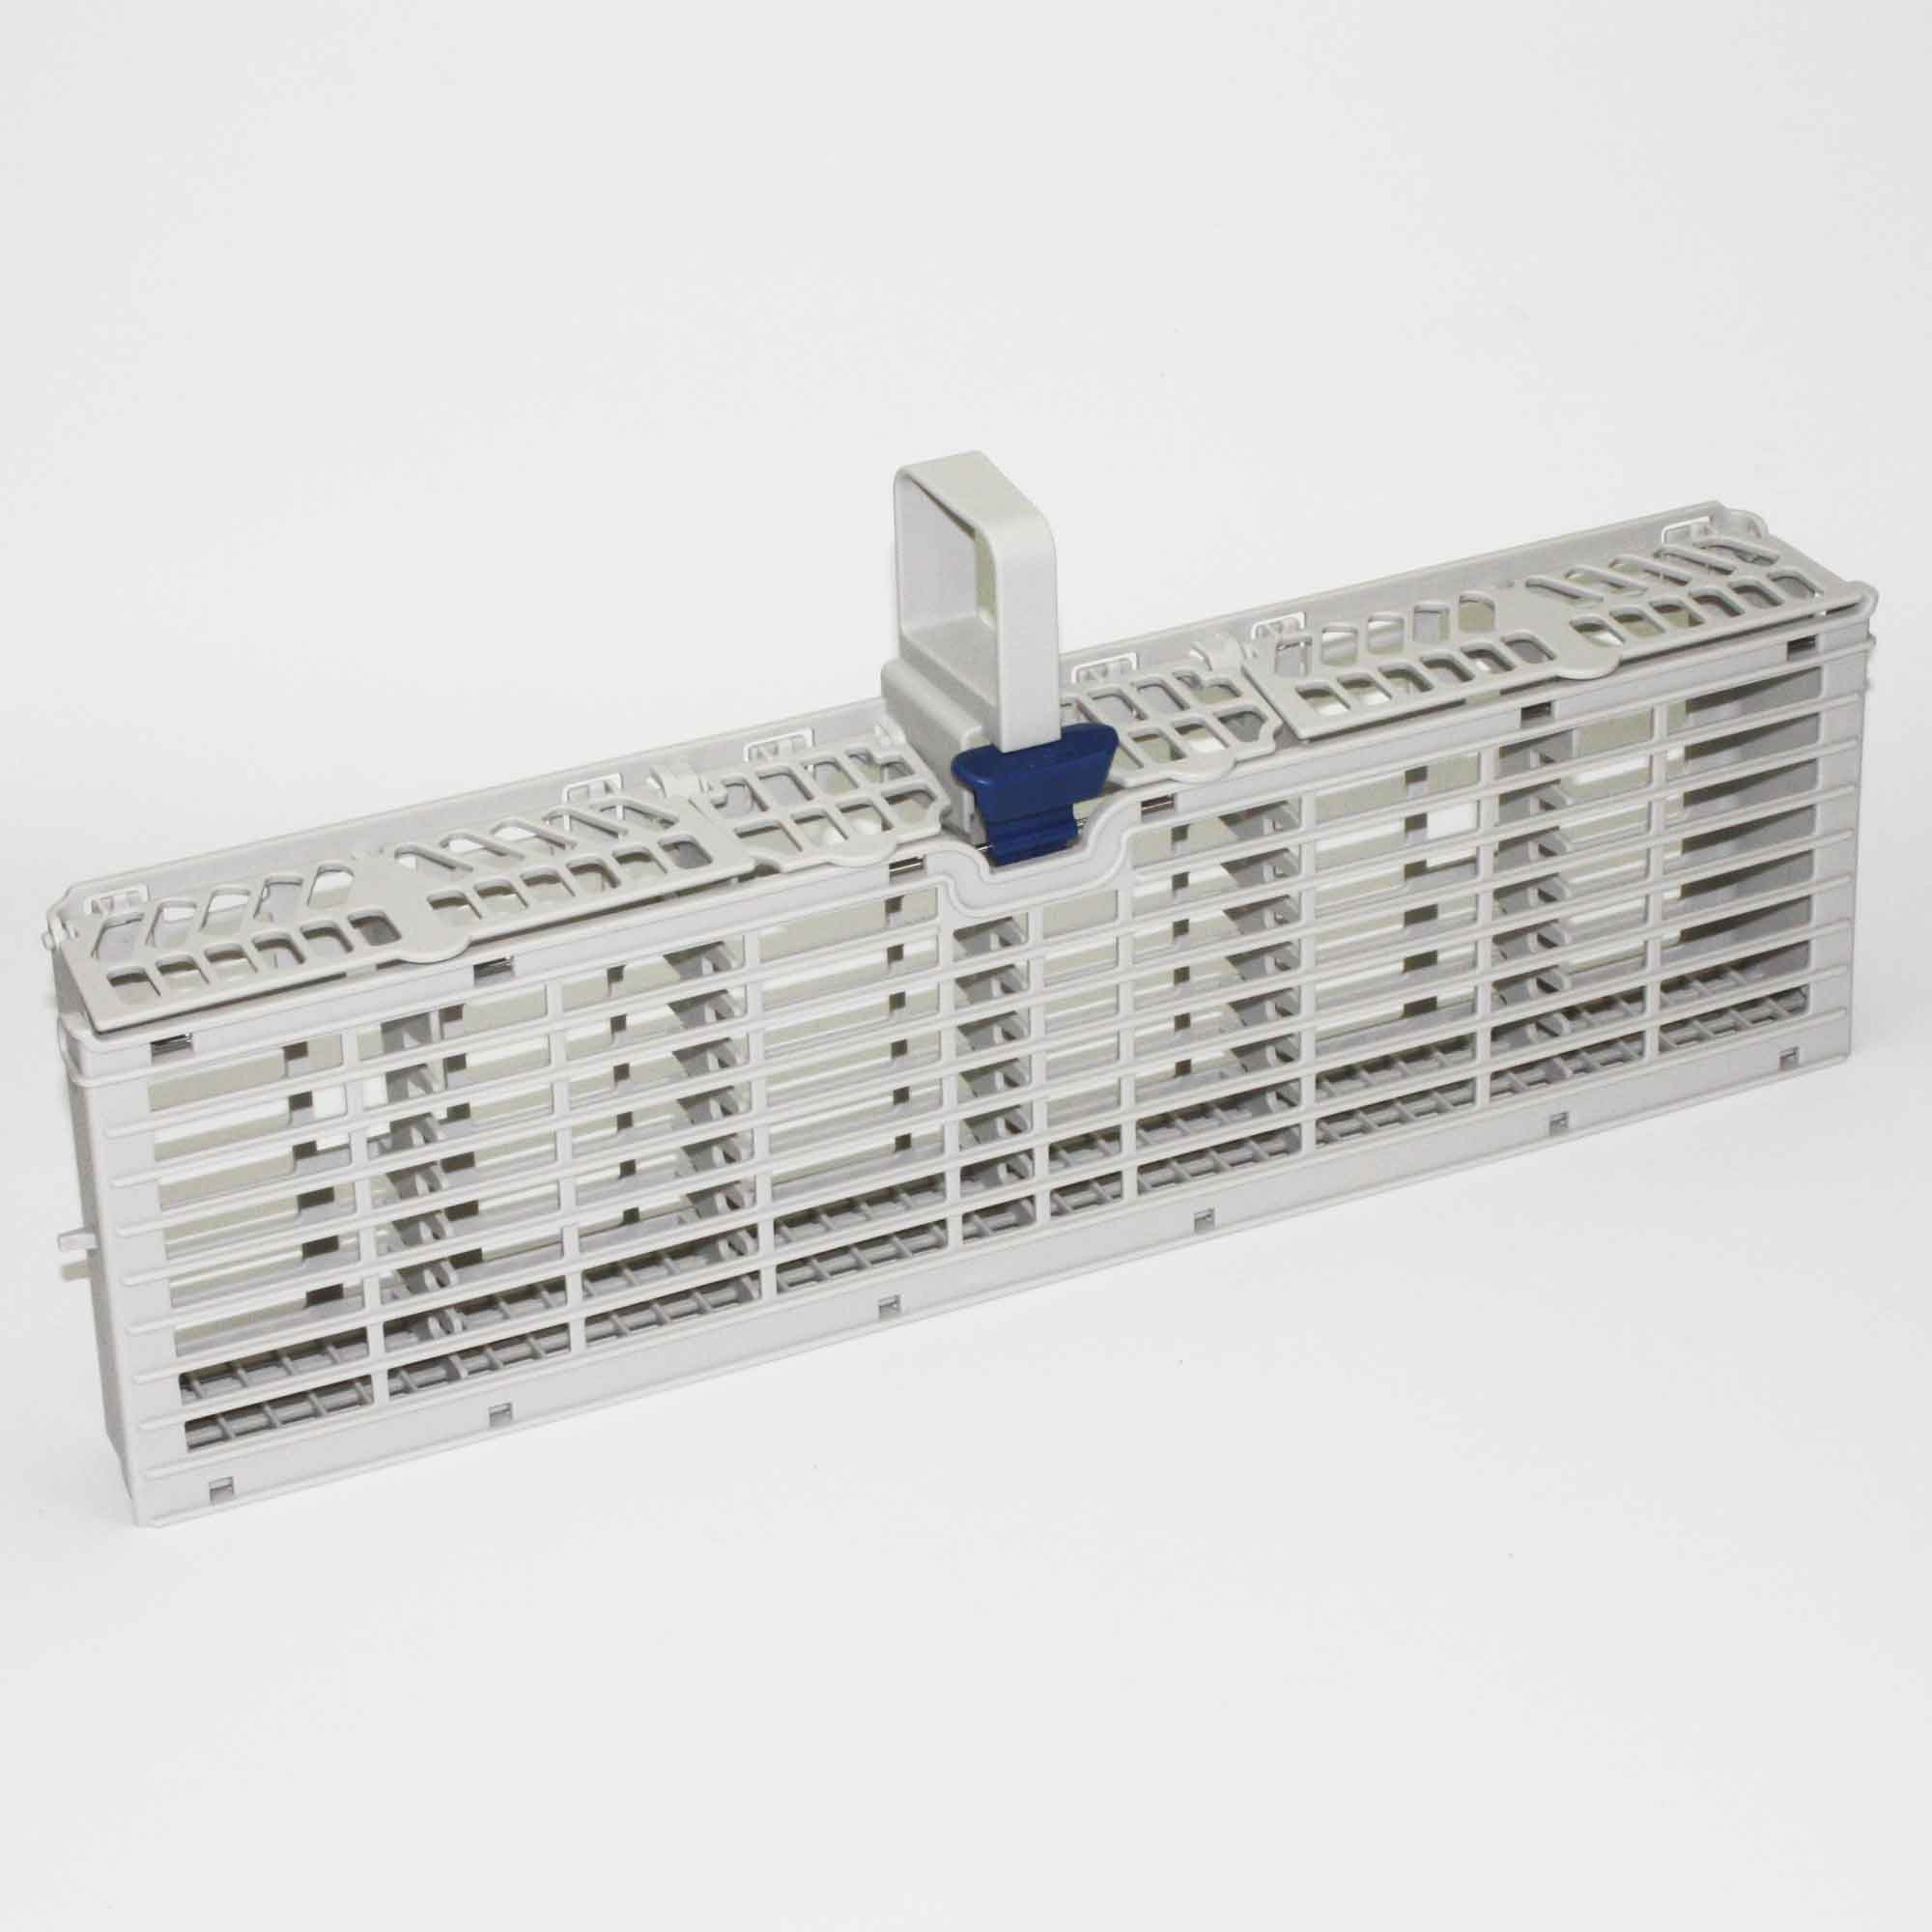 W11158802 Whirlpool Appliance Dishwasher Silverware Basket (2018 Upgraded Model, Replaces 8535075)